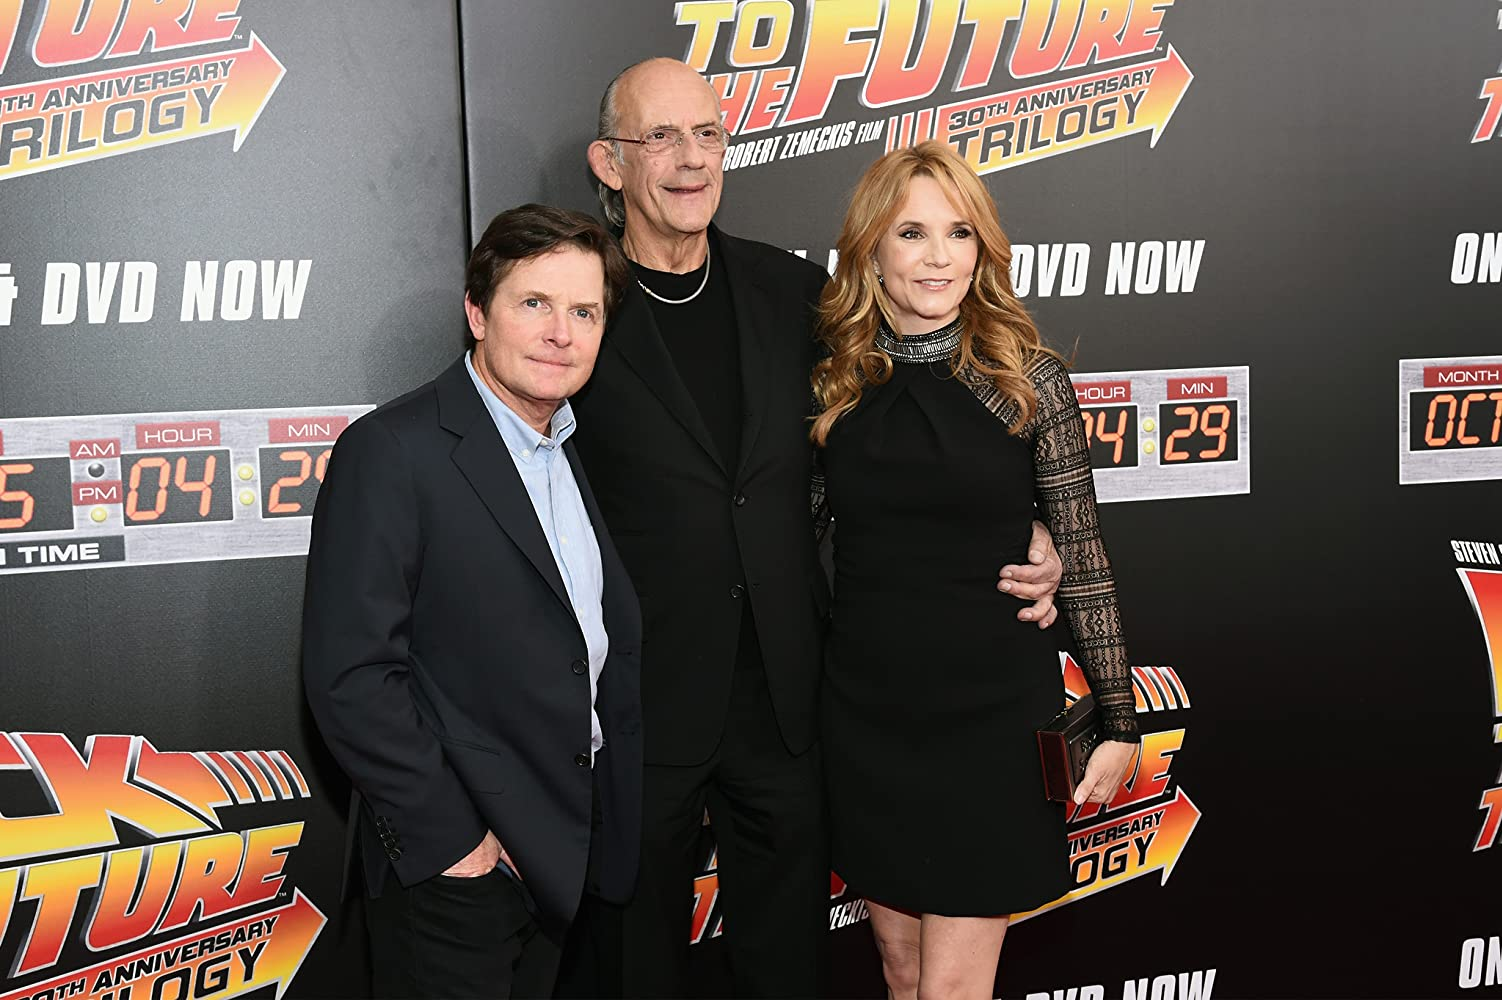 Michael J. Fox, Christopher Lloyd, and Lea Thompson at an event for Back to the Future (1985)